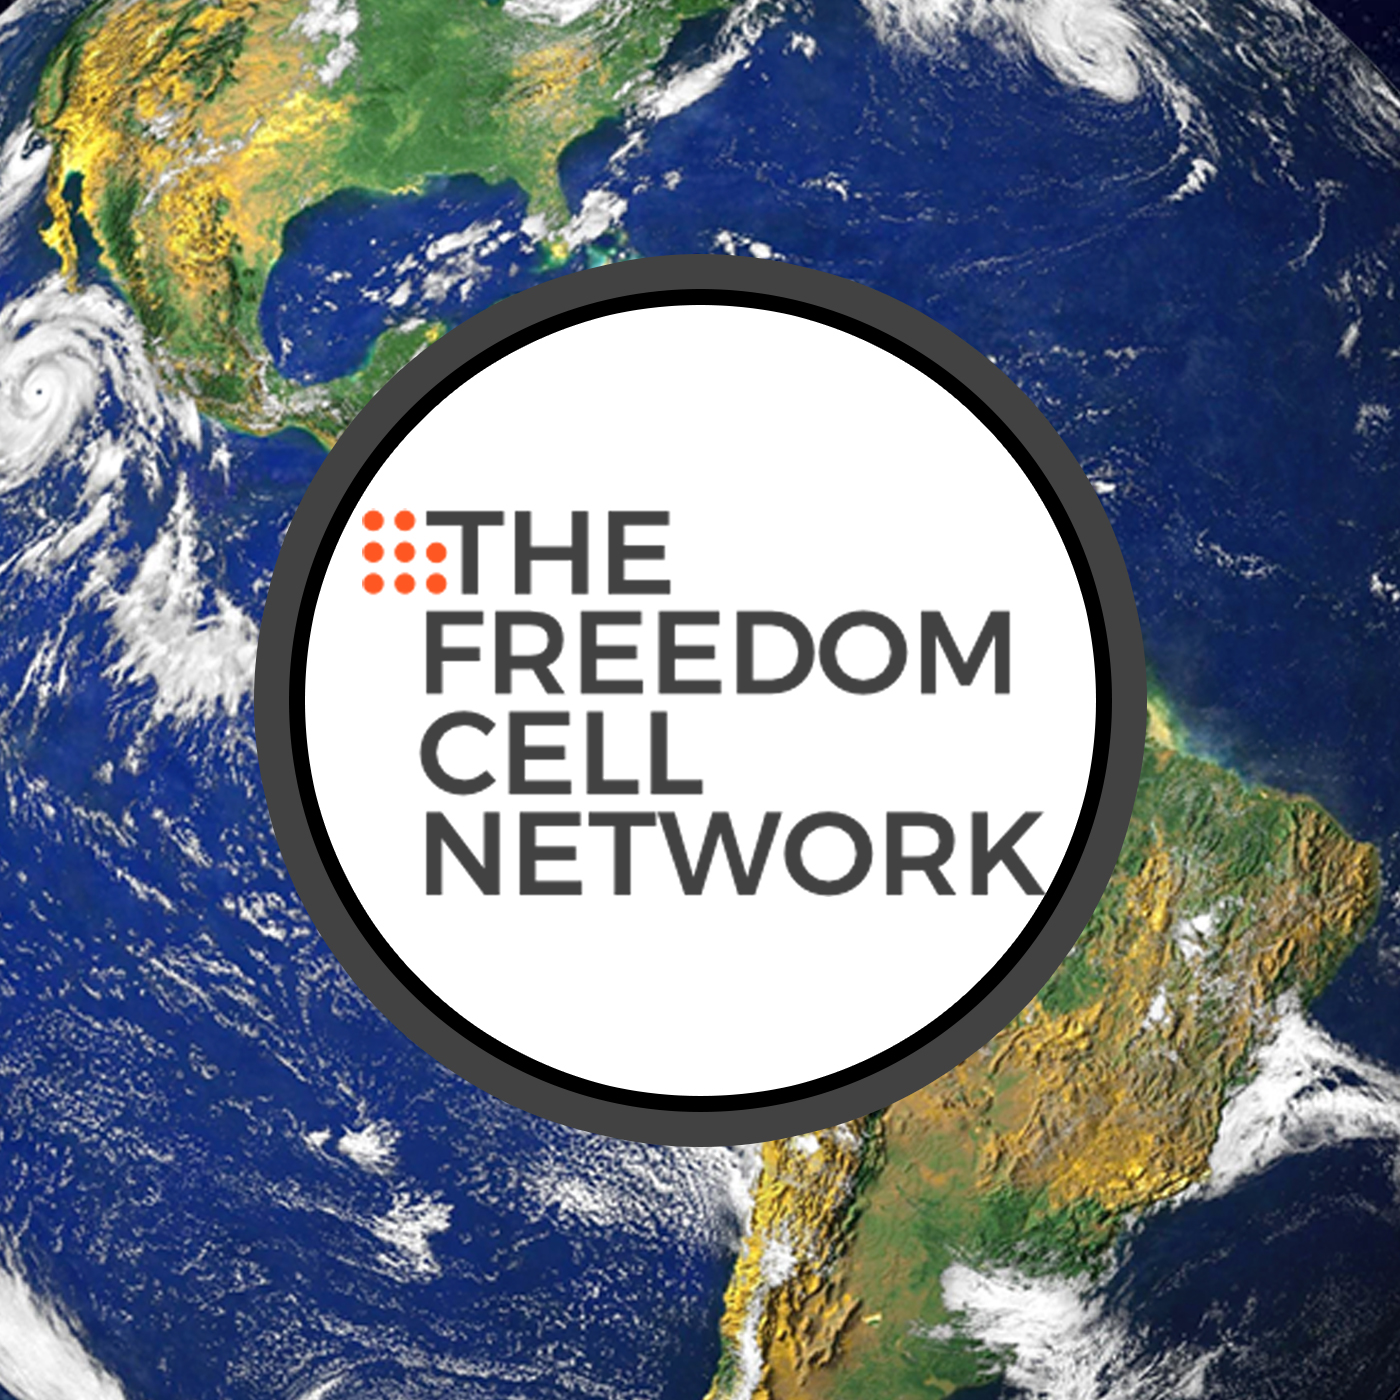 LFN #103 - How The Freedom Cell Network Can Help You Find Freedom In An Unfree World